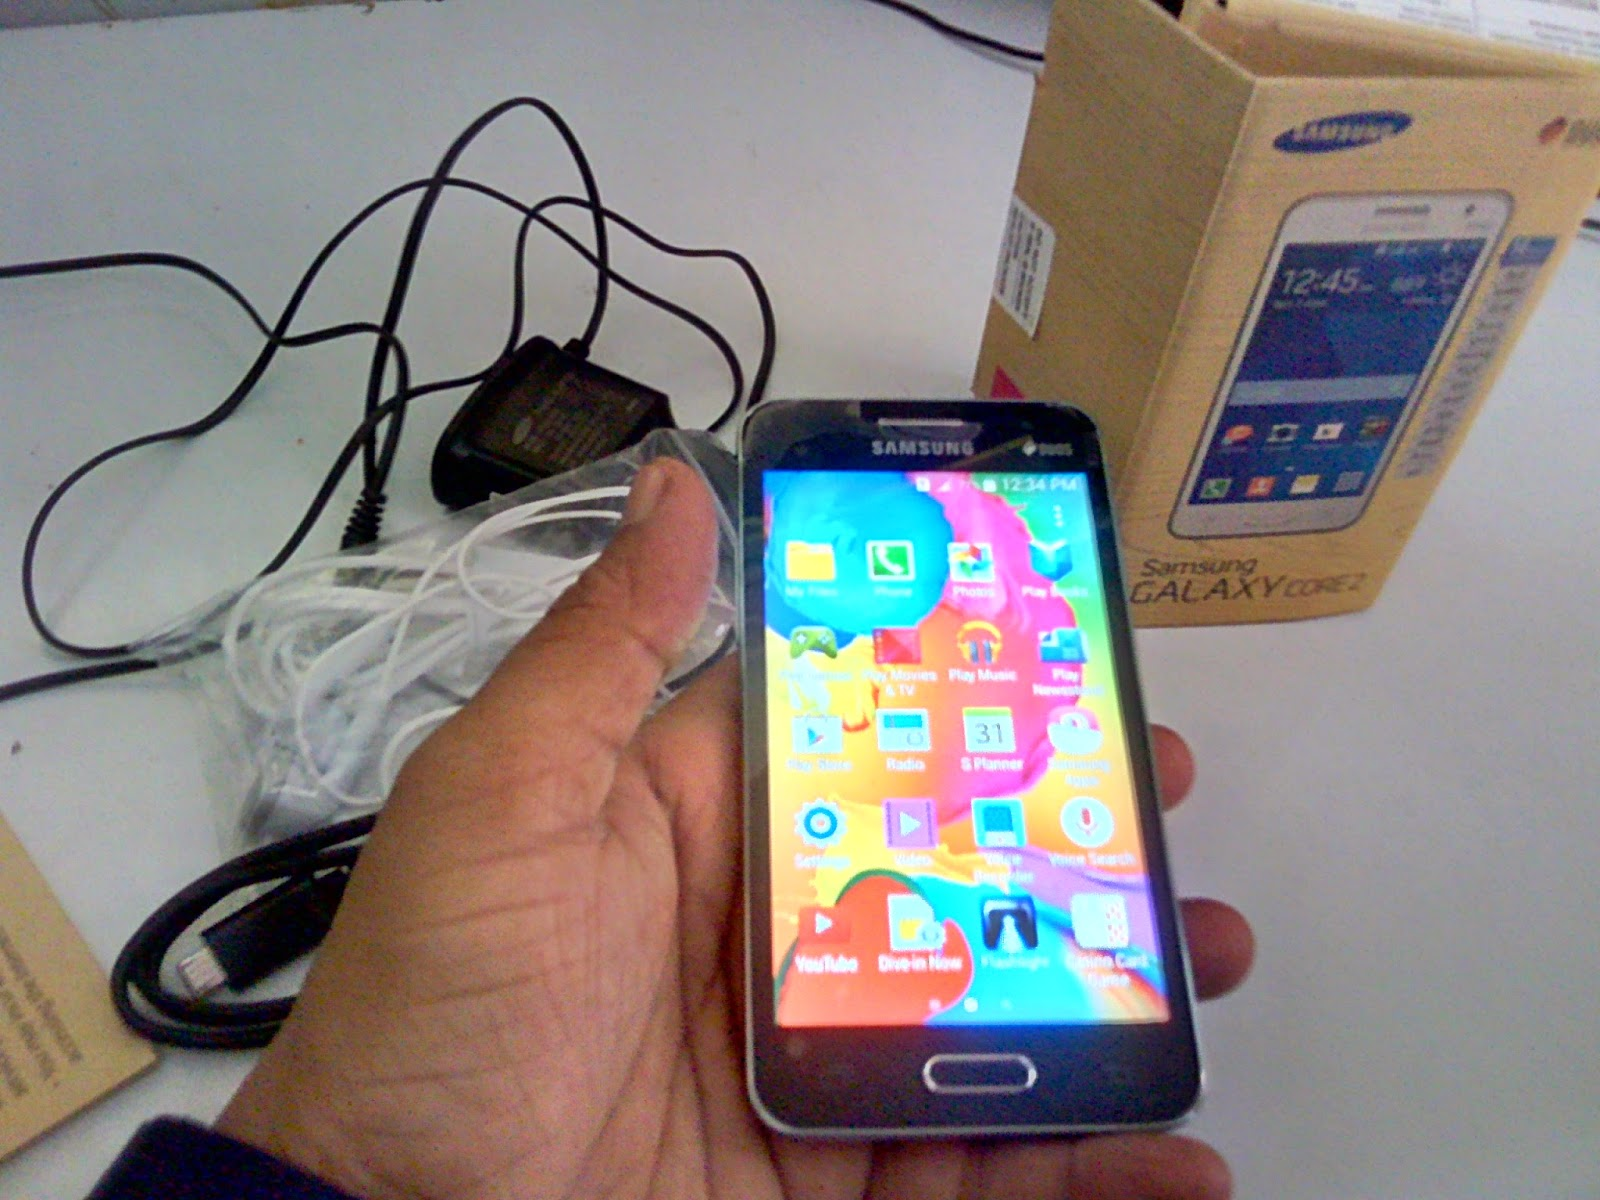 Samsung Galaxy Core 2 Price, Full Specification & Review, picture, images, photos,